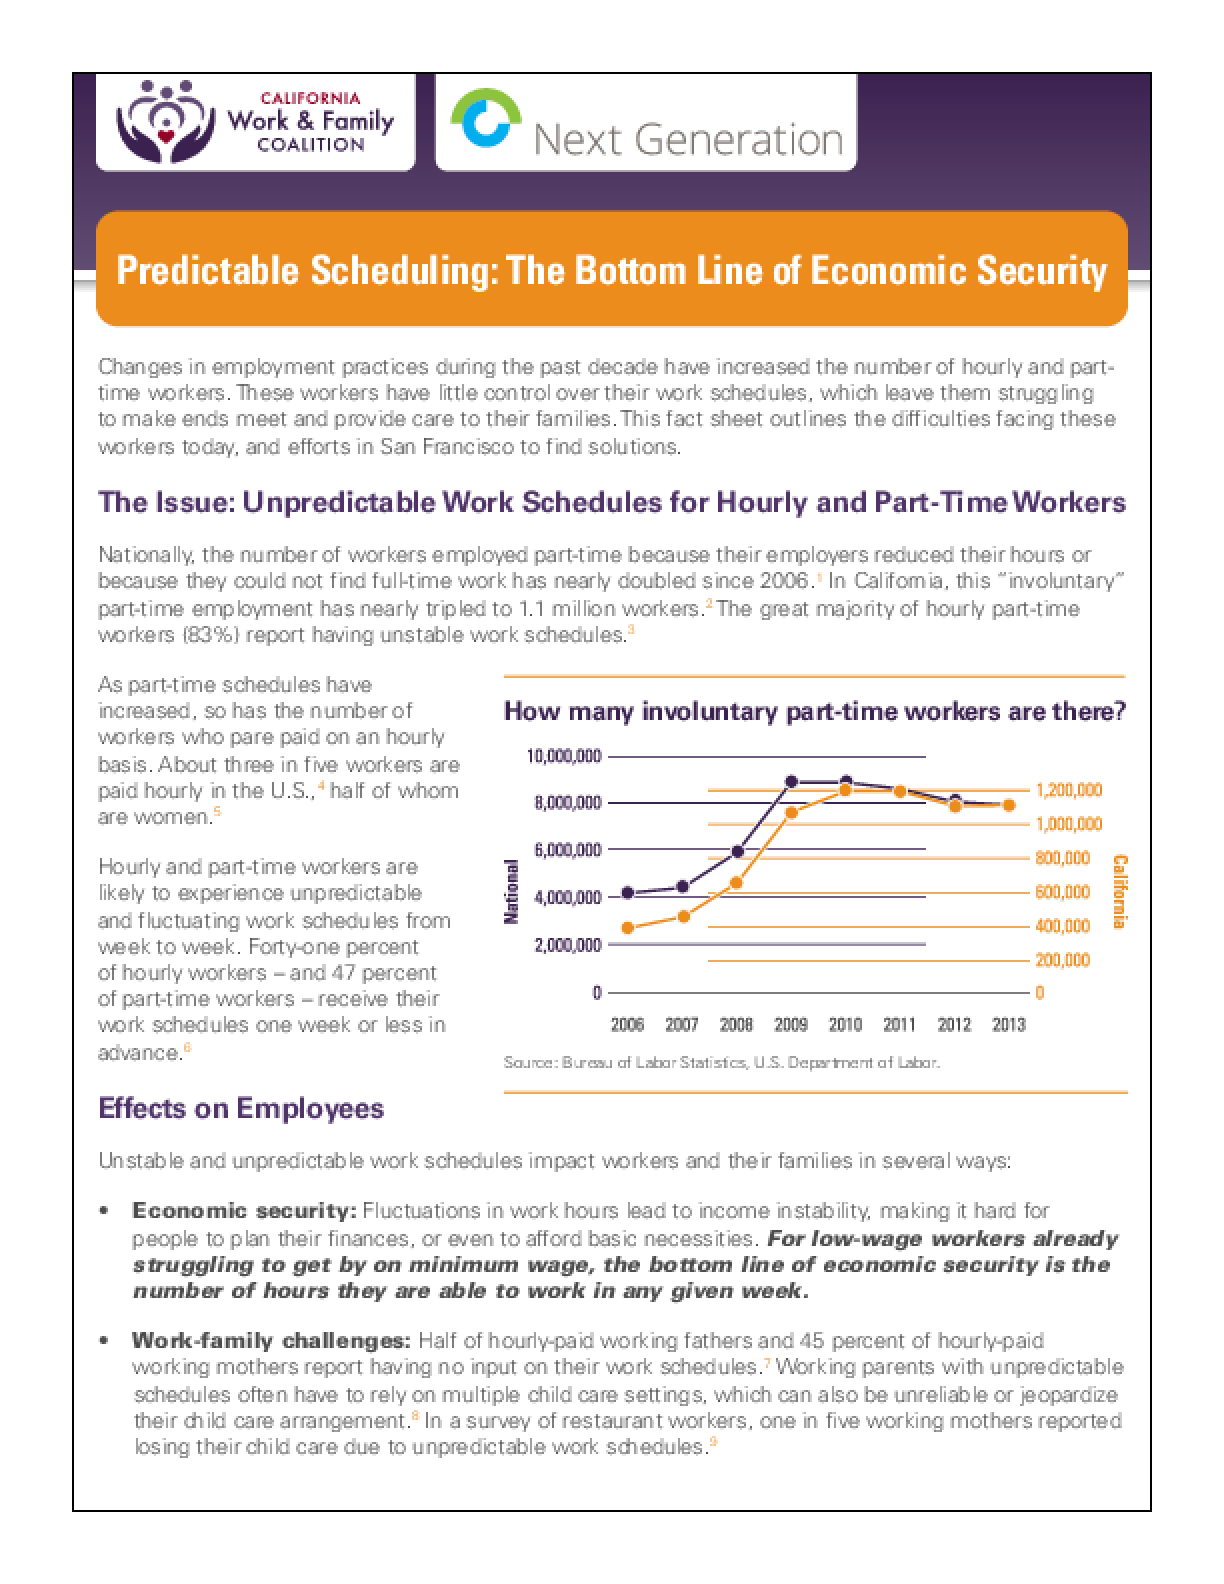 Predictable Scheduling: The Bottom Line of Economic Security